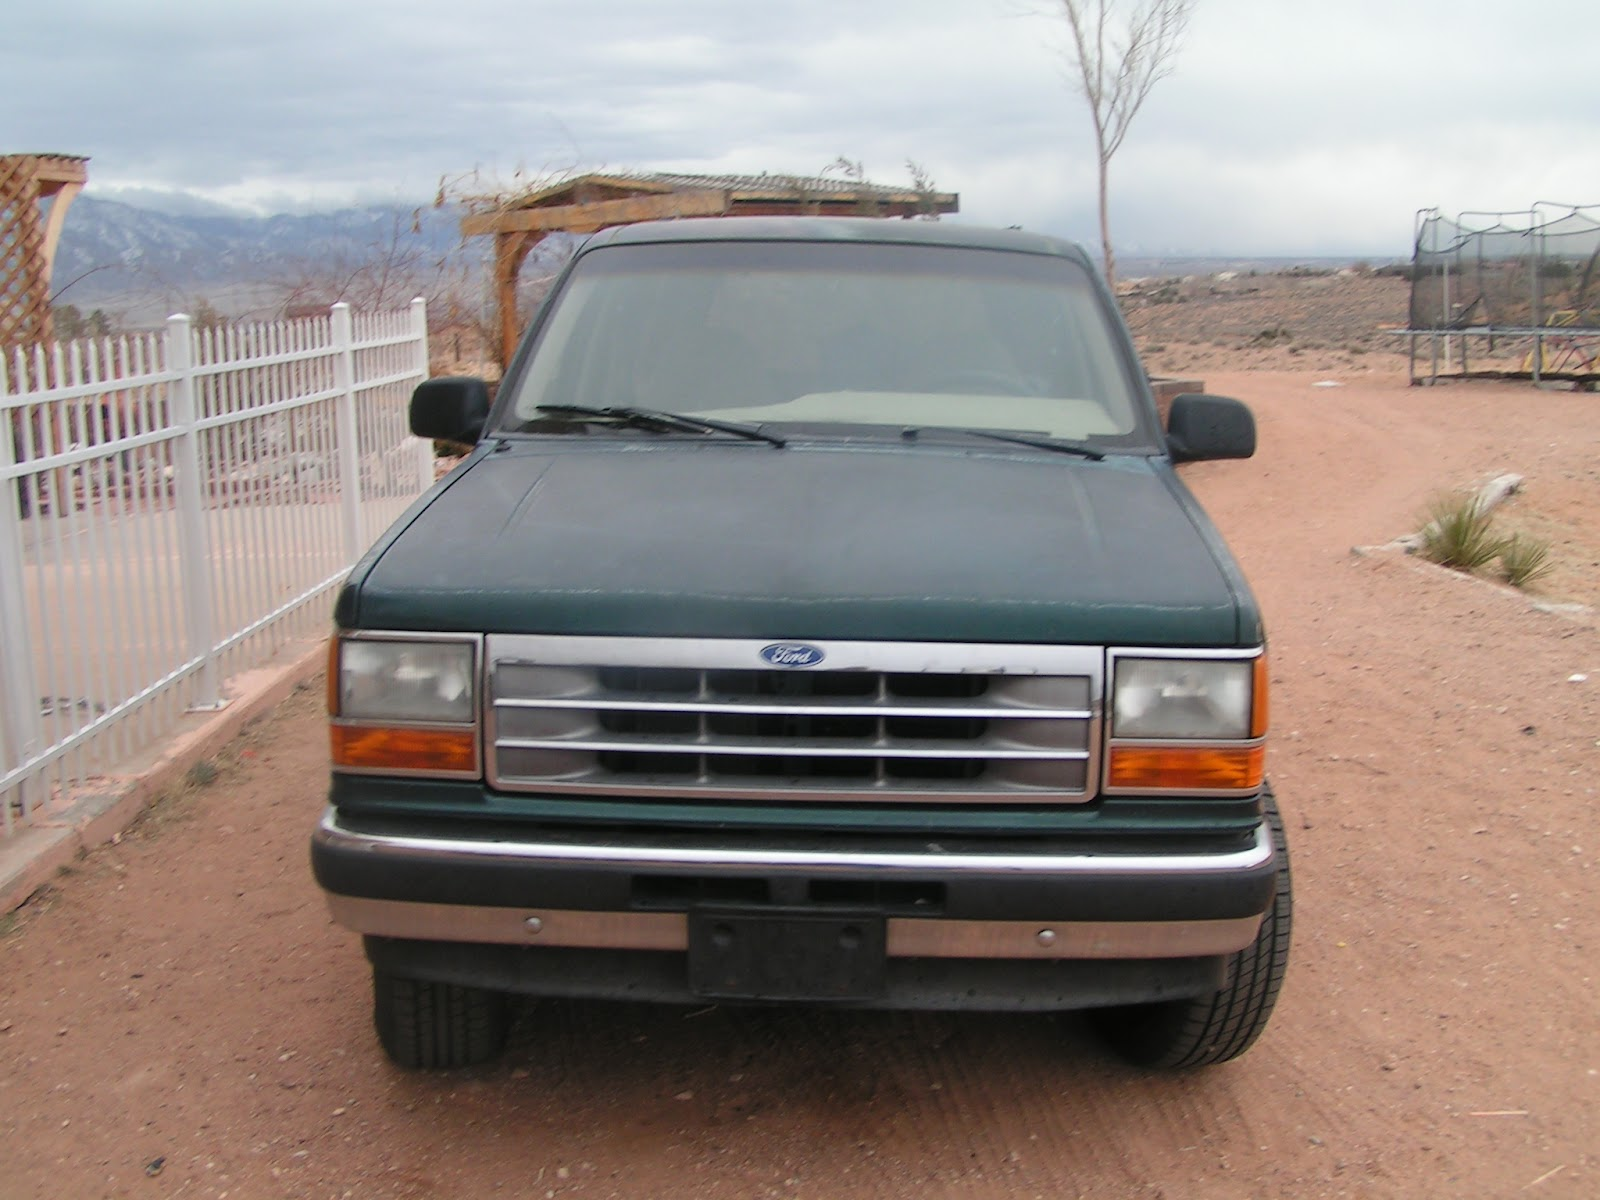 Jonathans Blog 1992 Explorer Fuse Box It Was Firing On 2 4 Cylinders Now The Cosmetics Chrome Exhaust Pipe 3 Door Panels Bulbs Switches And